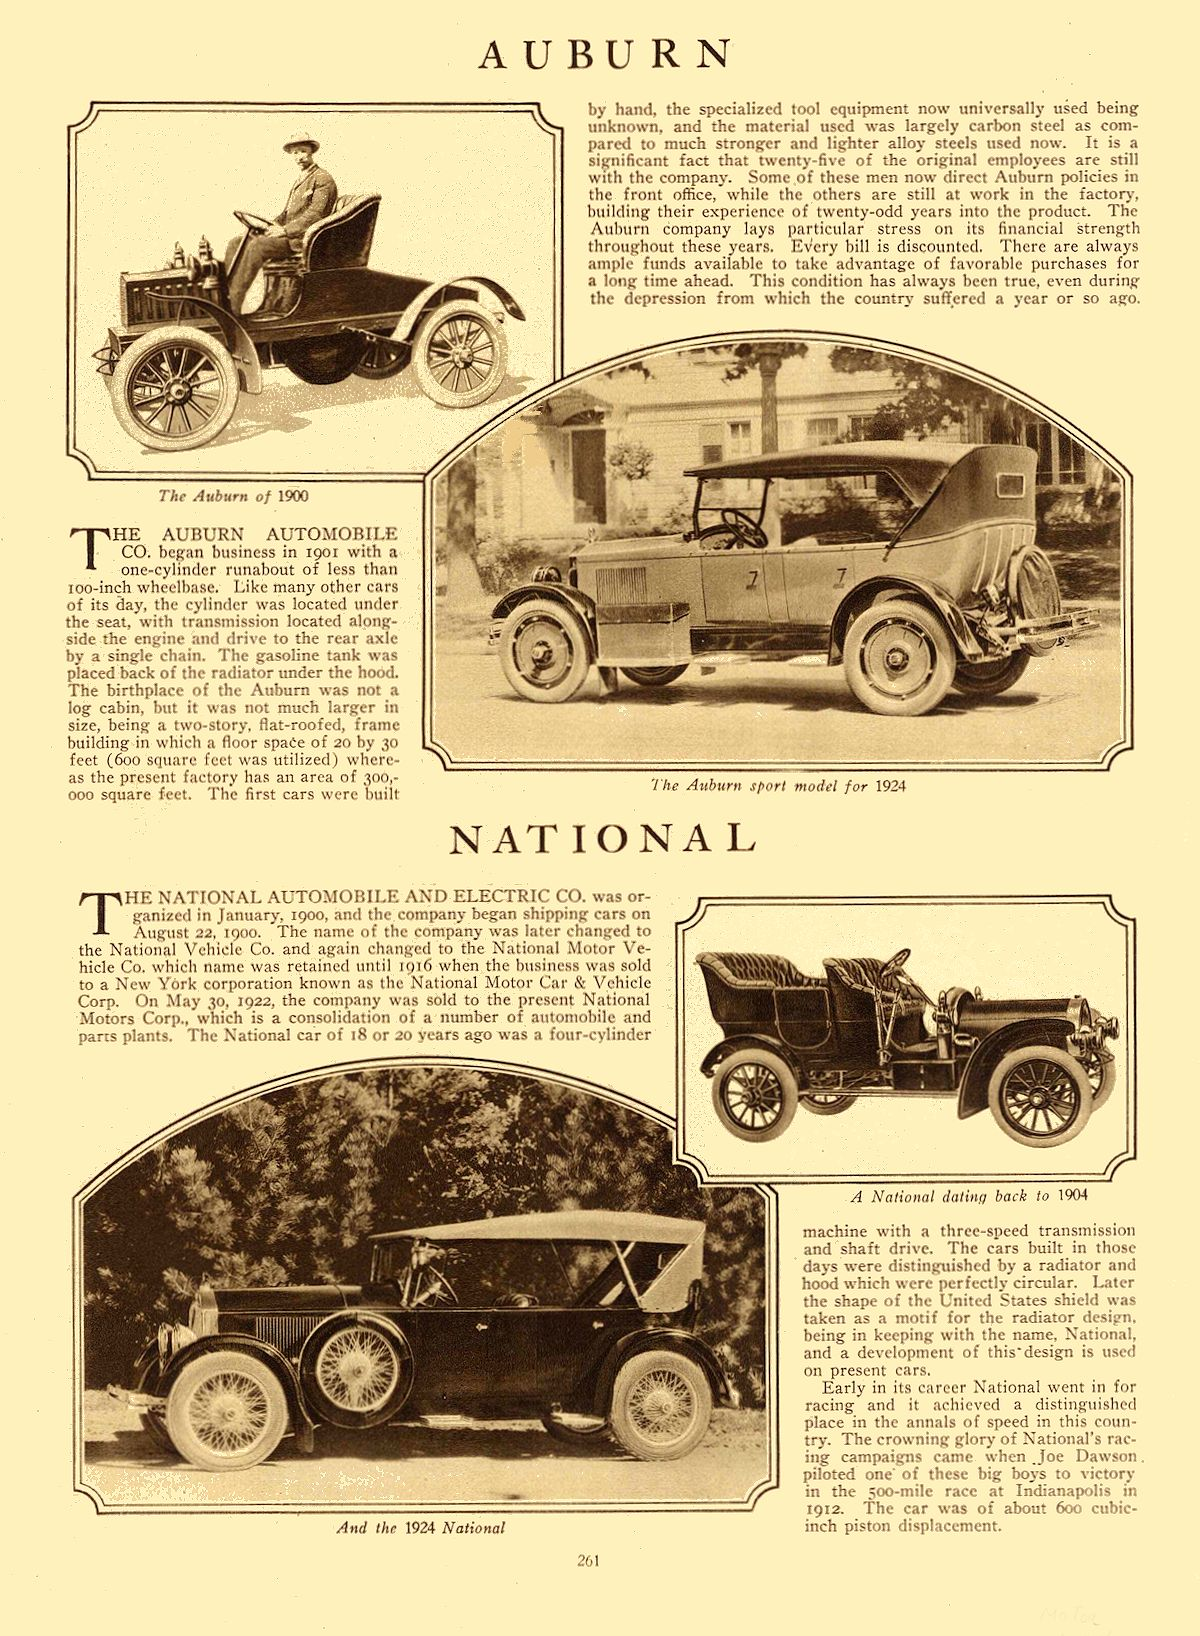 1924 NATIONAL National Motors Corp. Indianapolis, IND MoToR January 1924 Page 261 9.25″13.5″